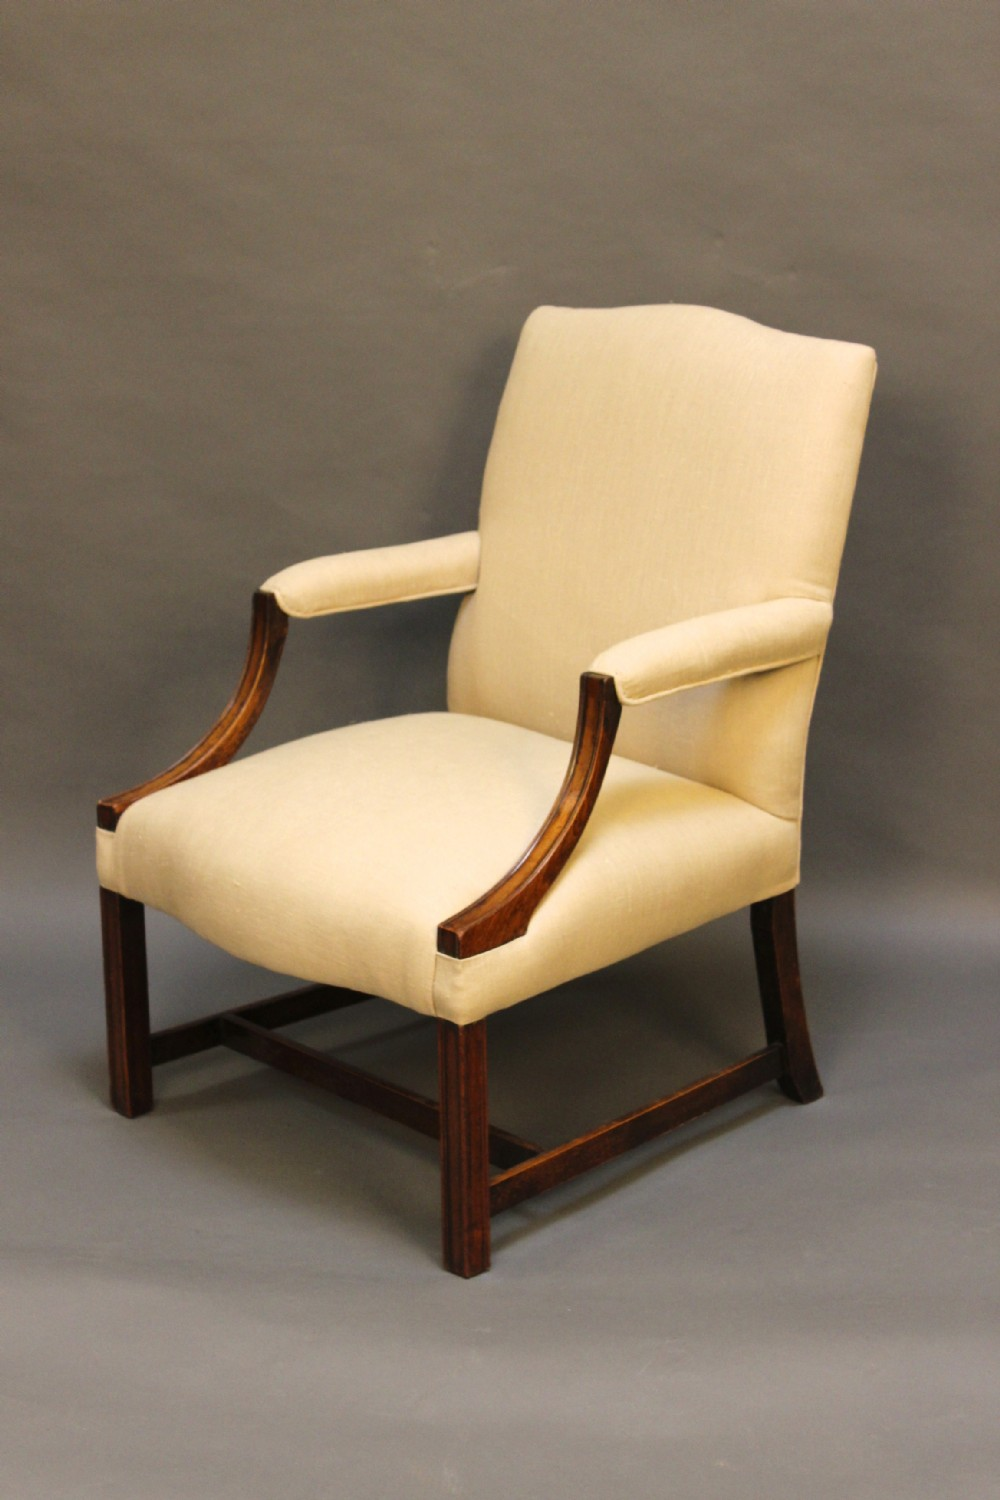 Mahogany Gainsborough Chair 259480 Sellingantiques Co Uk